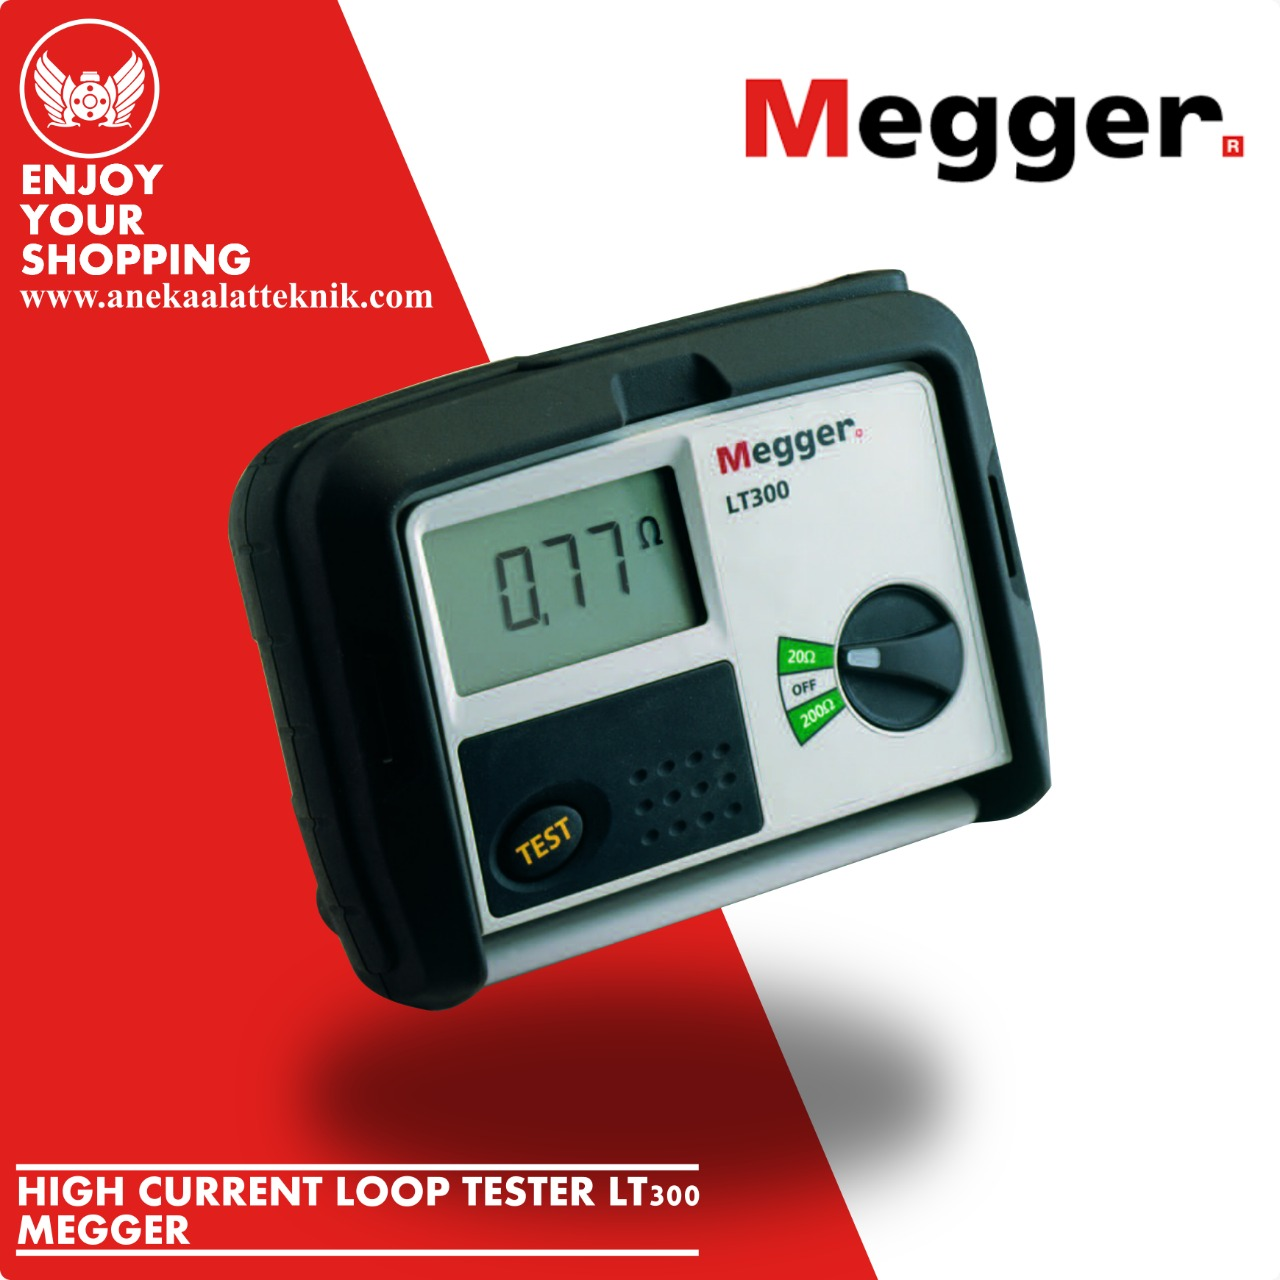 High current loop testers Megger LT 300